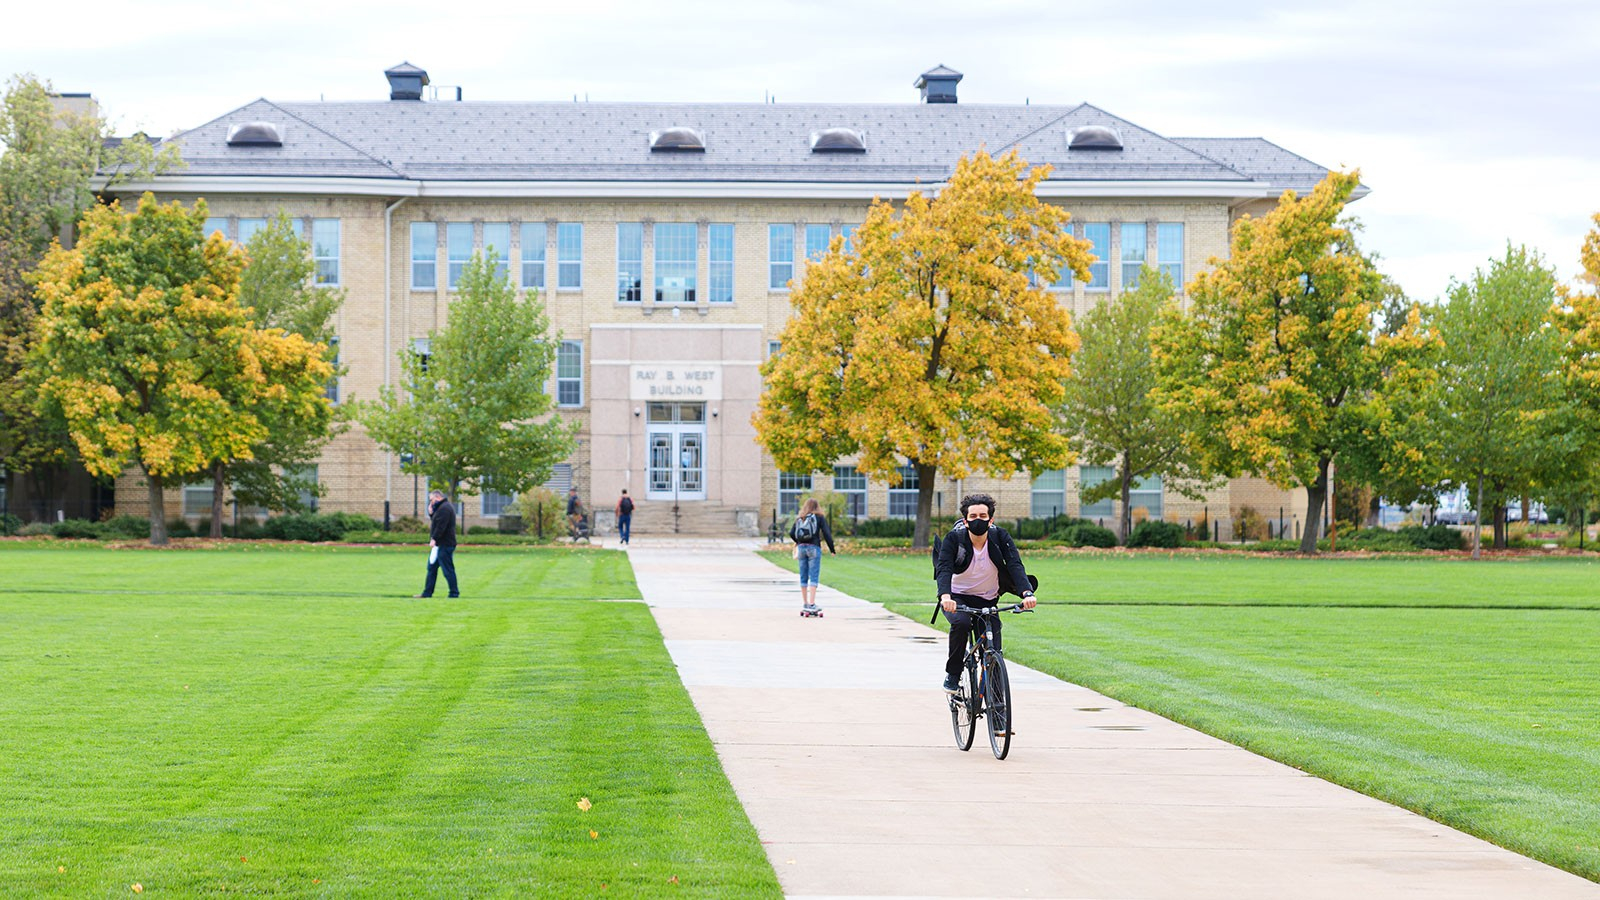 student riding a bike on the Quad near the Ray B. West building.